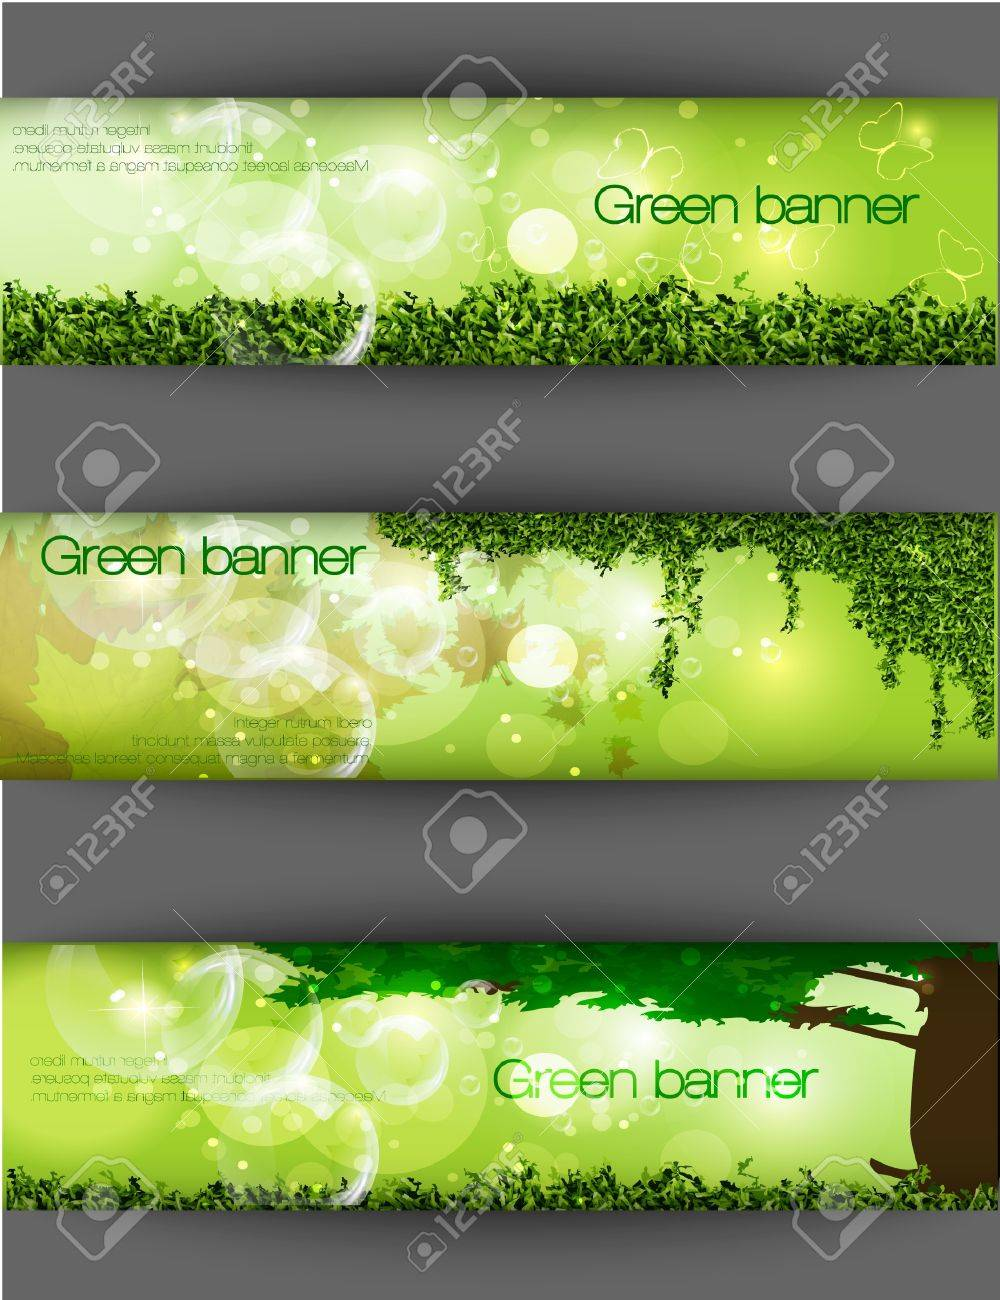 green banner with grass and leaves Stock Vector - 15225676